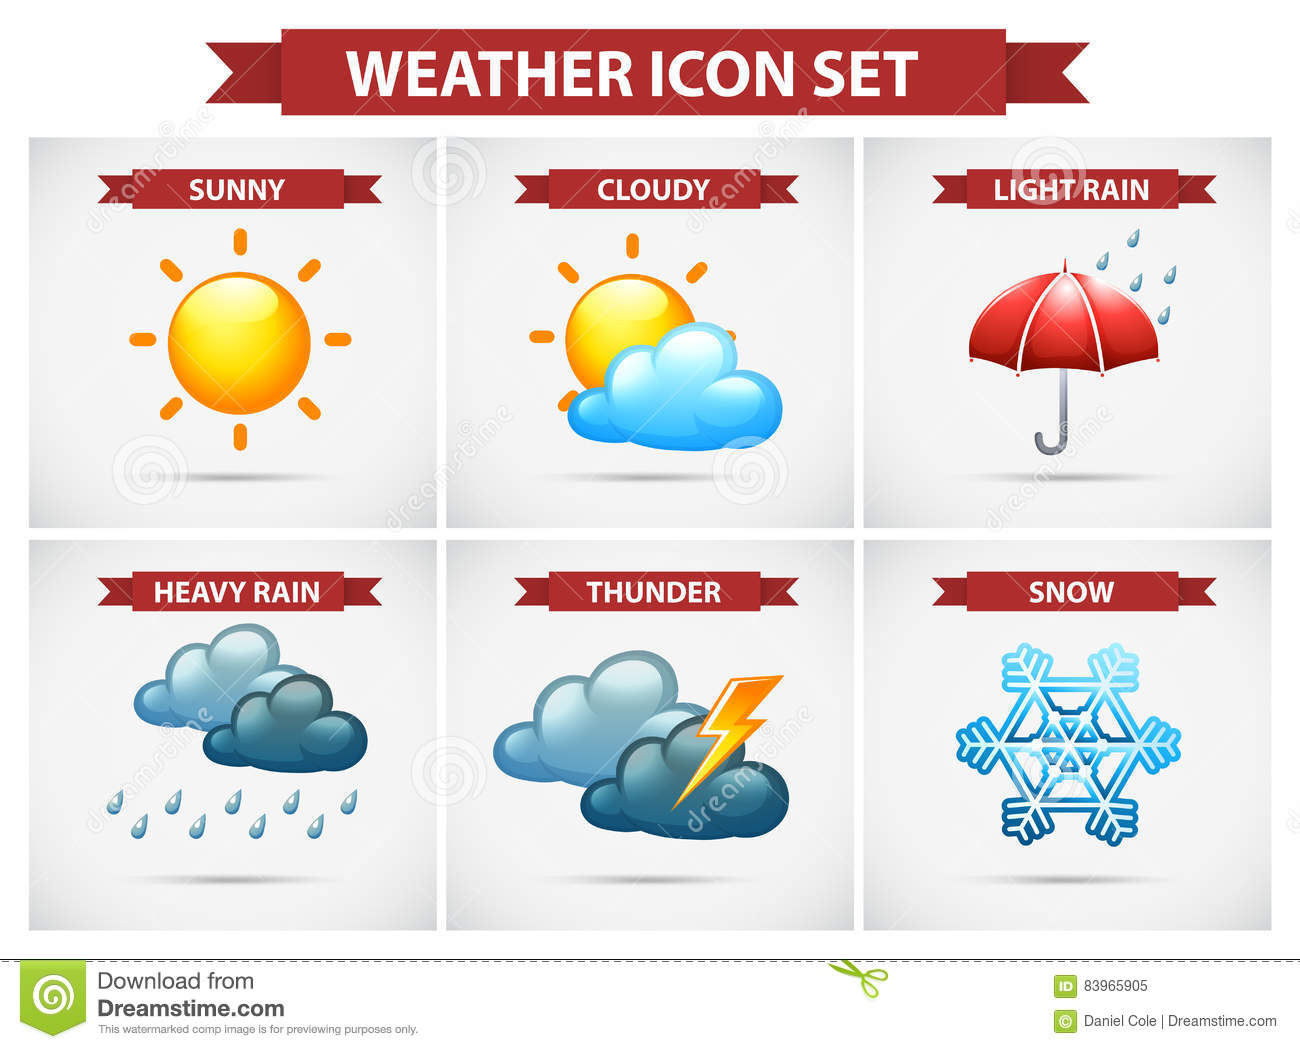 d194053ea6 Weather Icon Set With Many Weather Conditions Stock Illustration ...